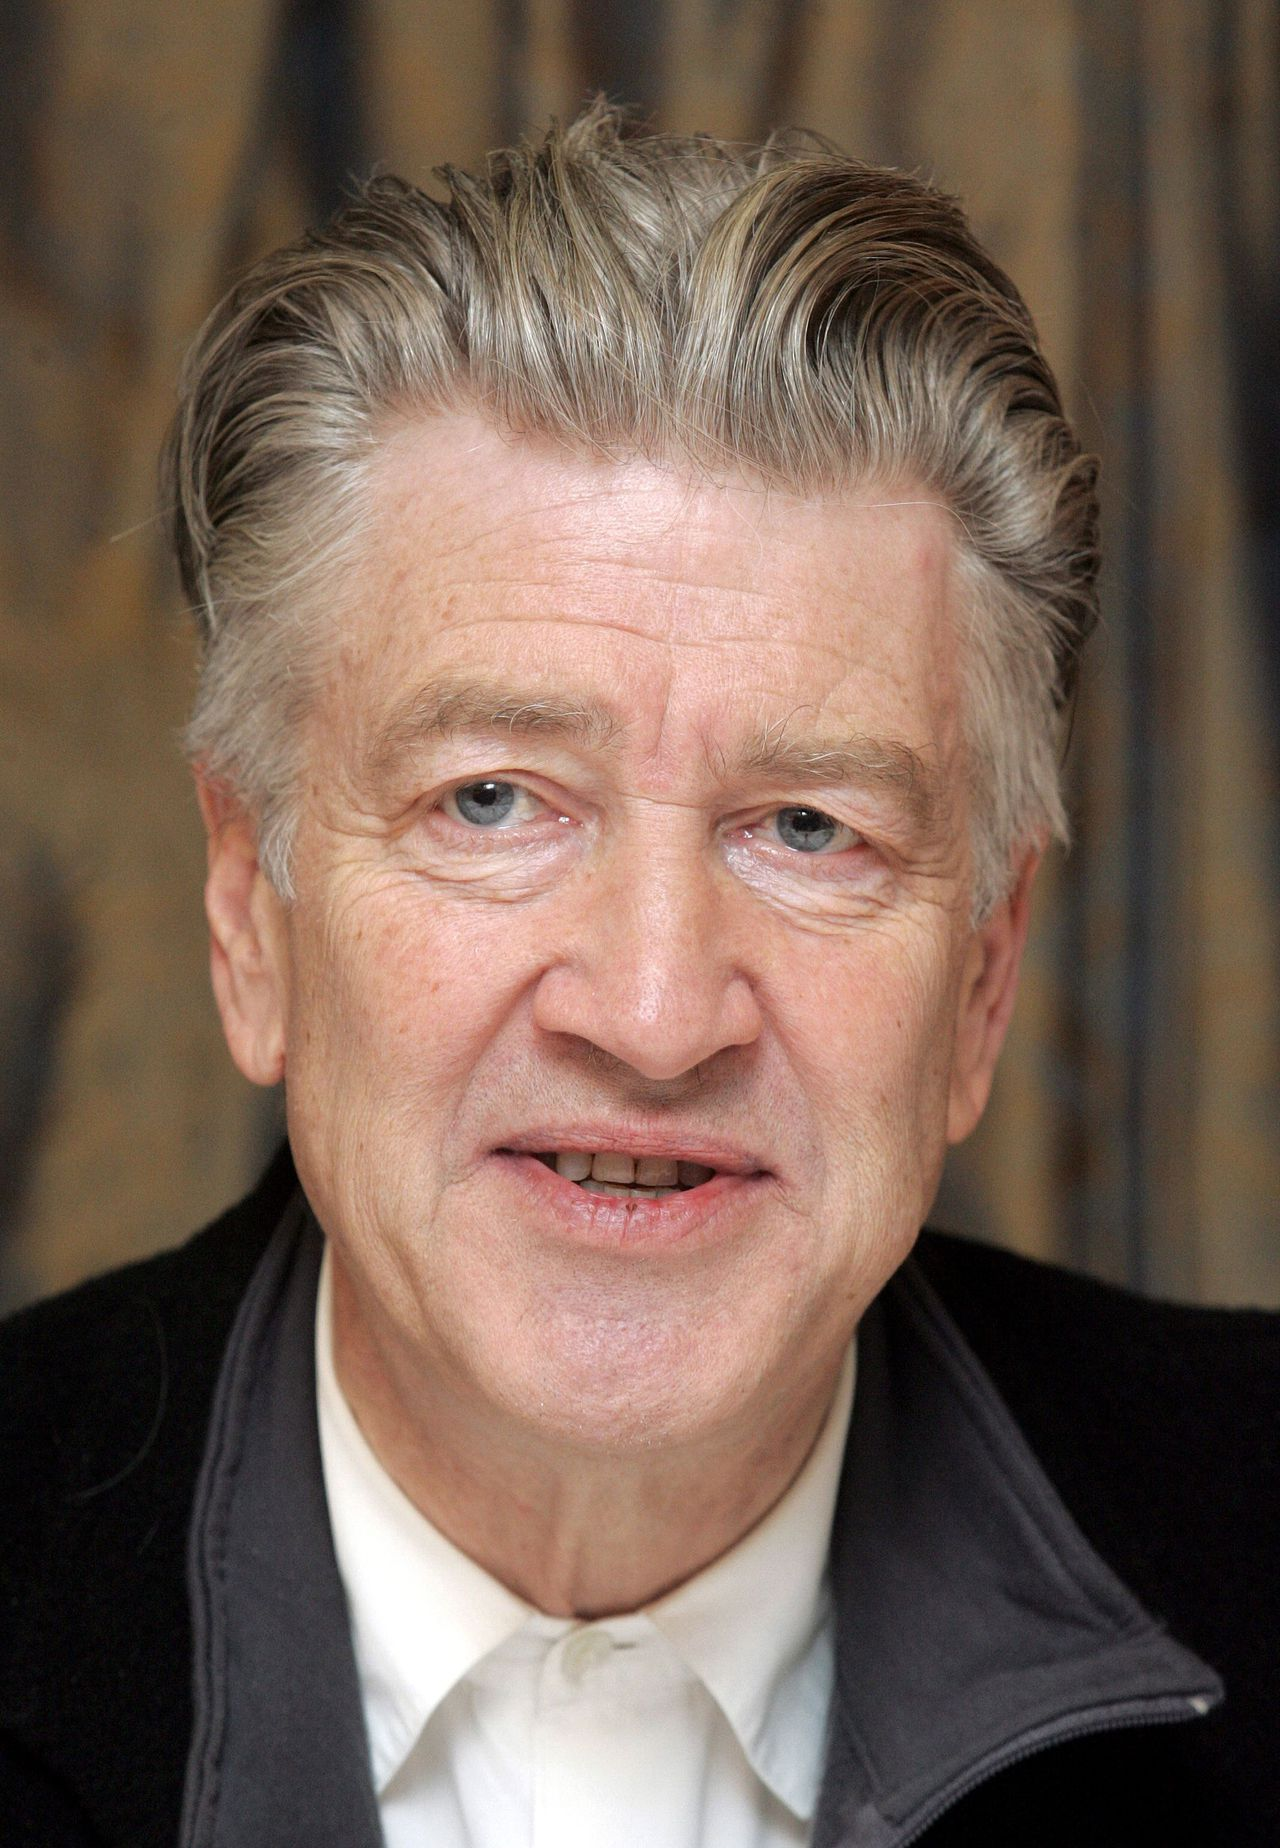 US director David Lynch gives a press conference 28 January 2006 in Berlin. He presented his foundation for Consciousness-Based Education and World Peace as well as a project to found in Germany a Maharishi University for Vedic Sciences. AFP PHOTO DDP/MARCUS BRANDT GERMANY OUT